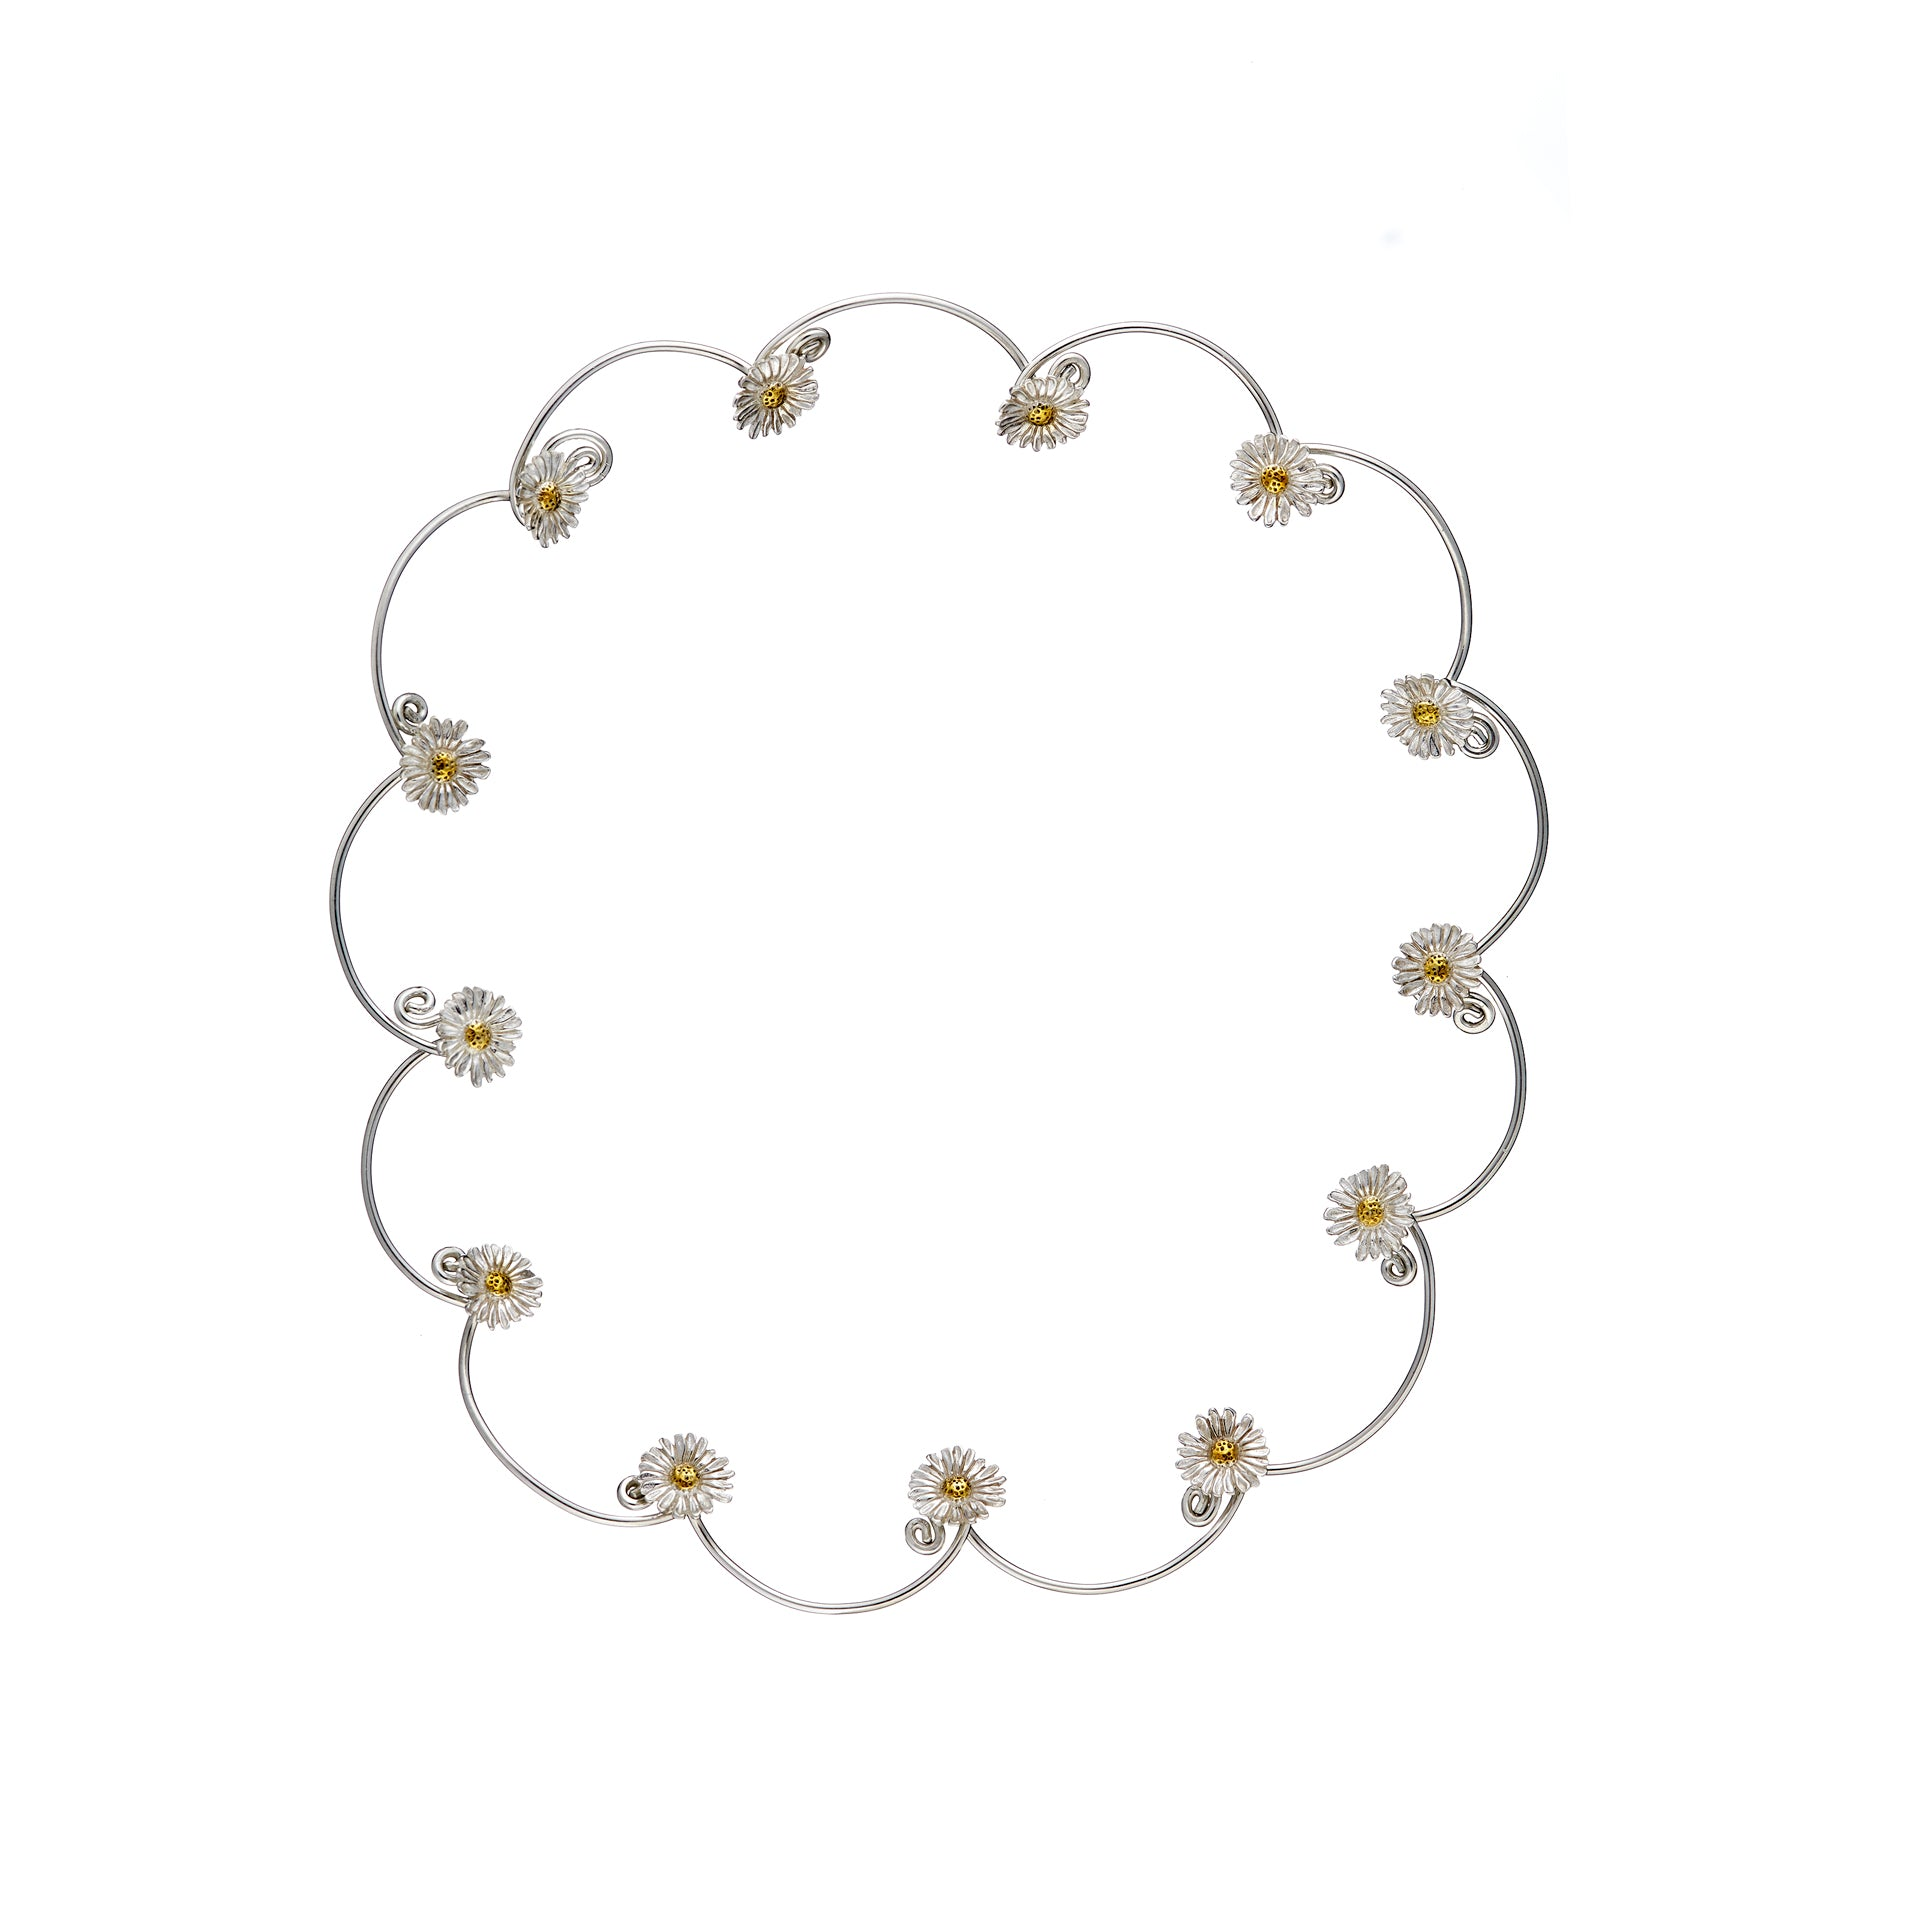 Daisy Chain Necklet